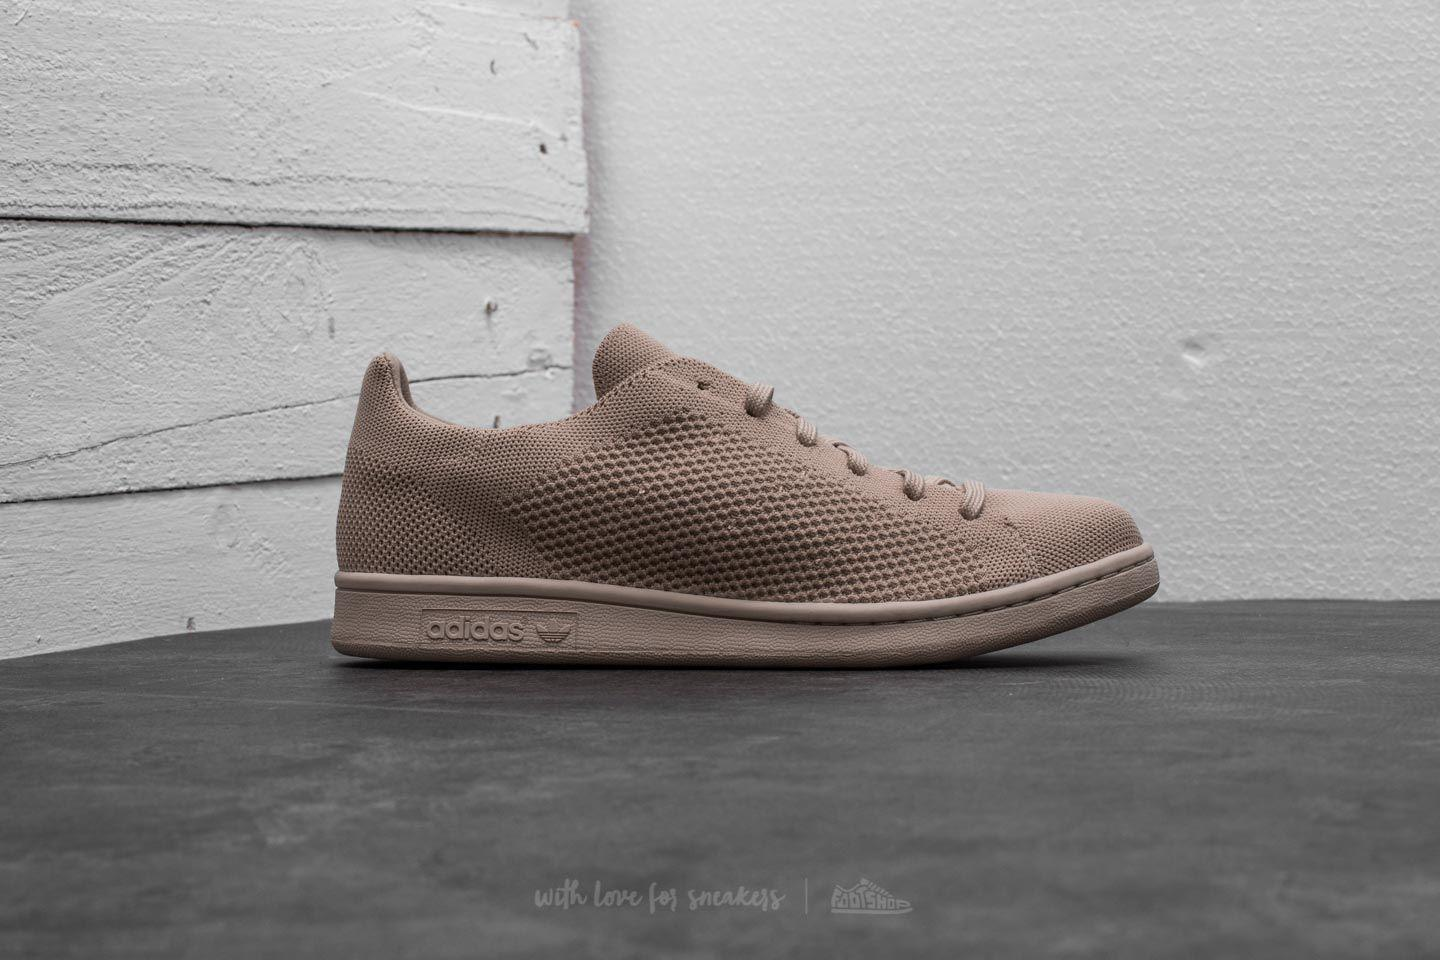 Lyst - adidas Originals Adidas Stan Smith Primeknit Clay Brown  Clay ... 99ad8ffe0